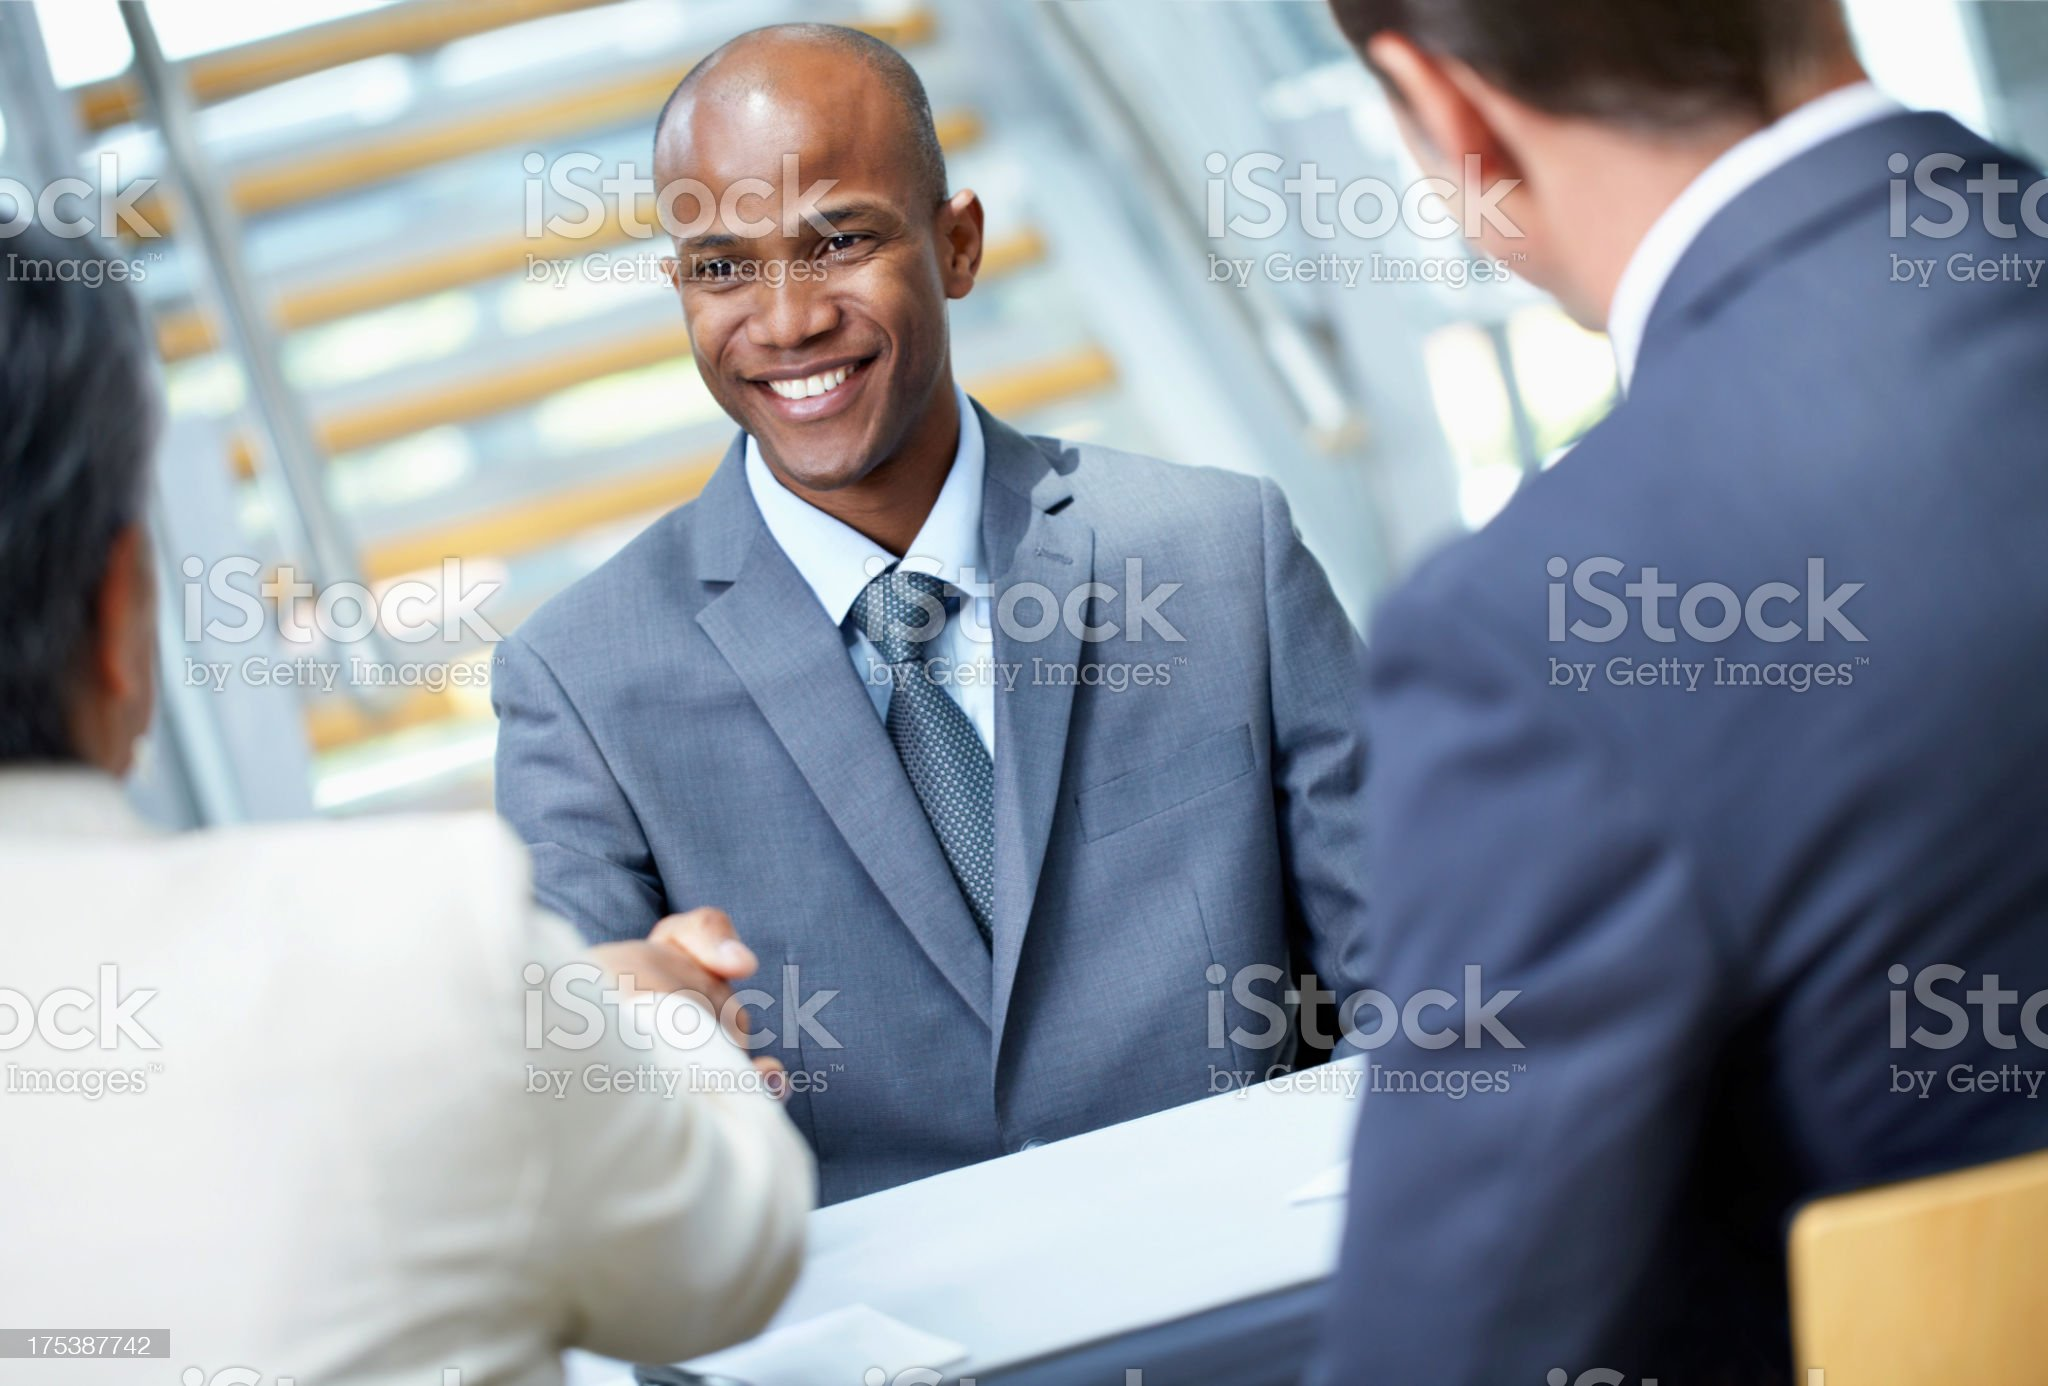 Getting the job you want royalty-free stock photo